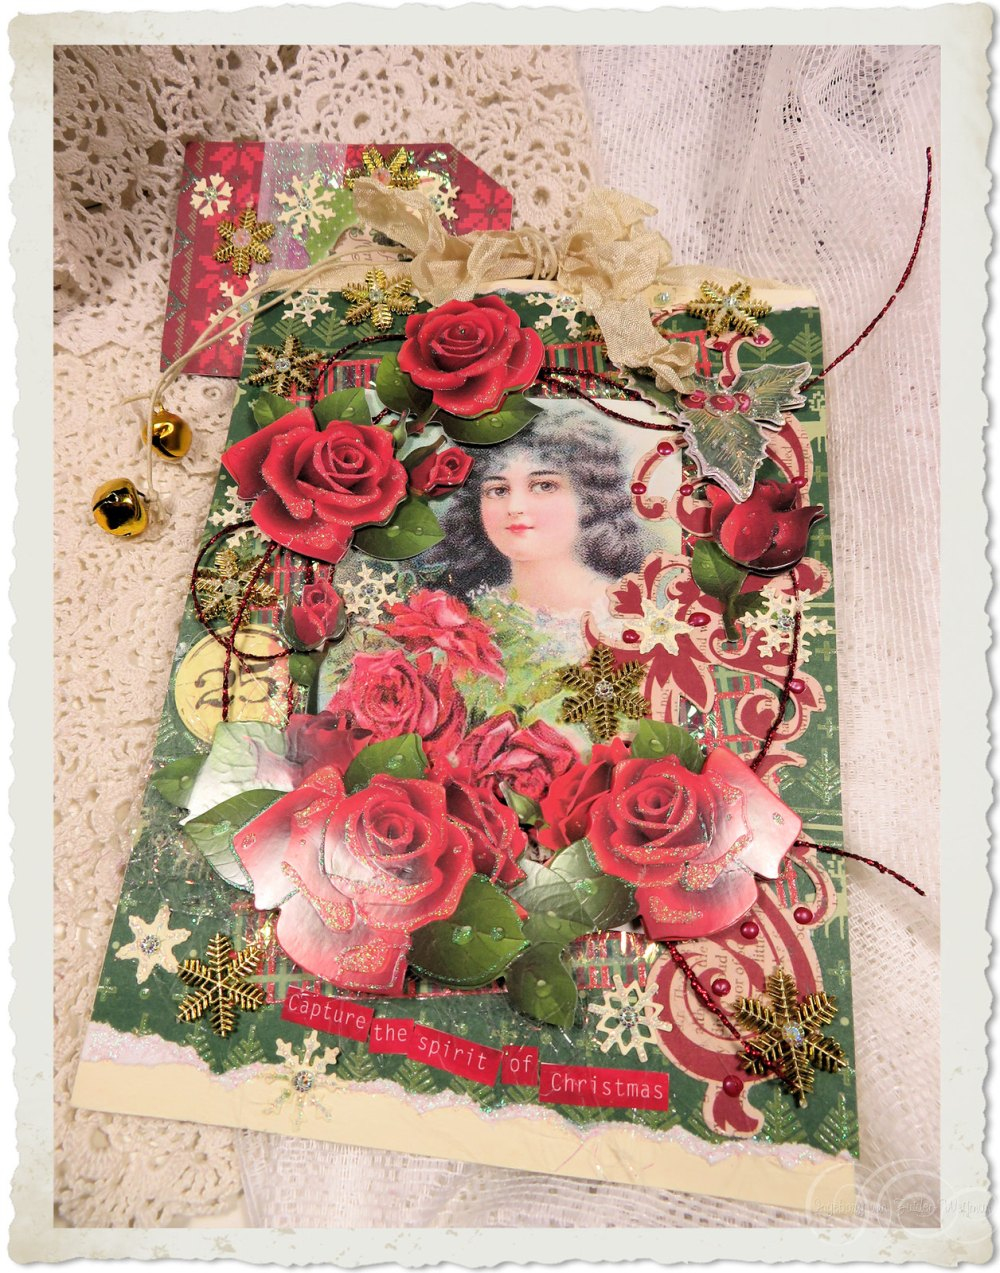 Handmade red roses Christmas card with vintage girl by Ingeborg van Zuiden